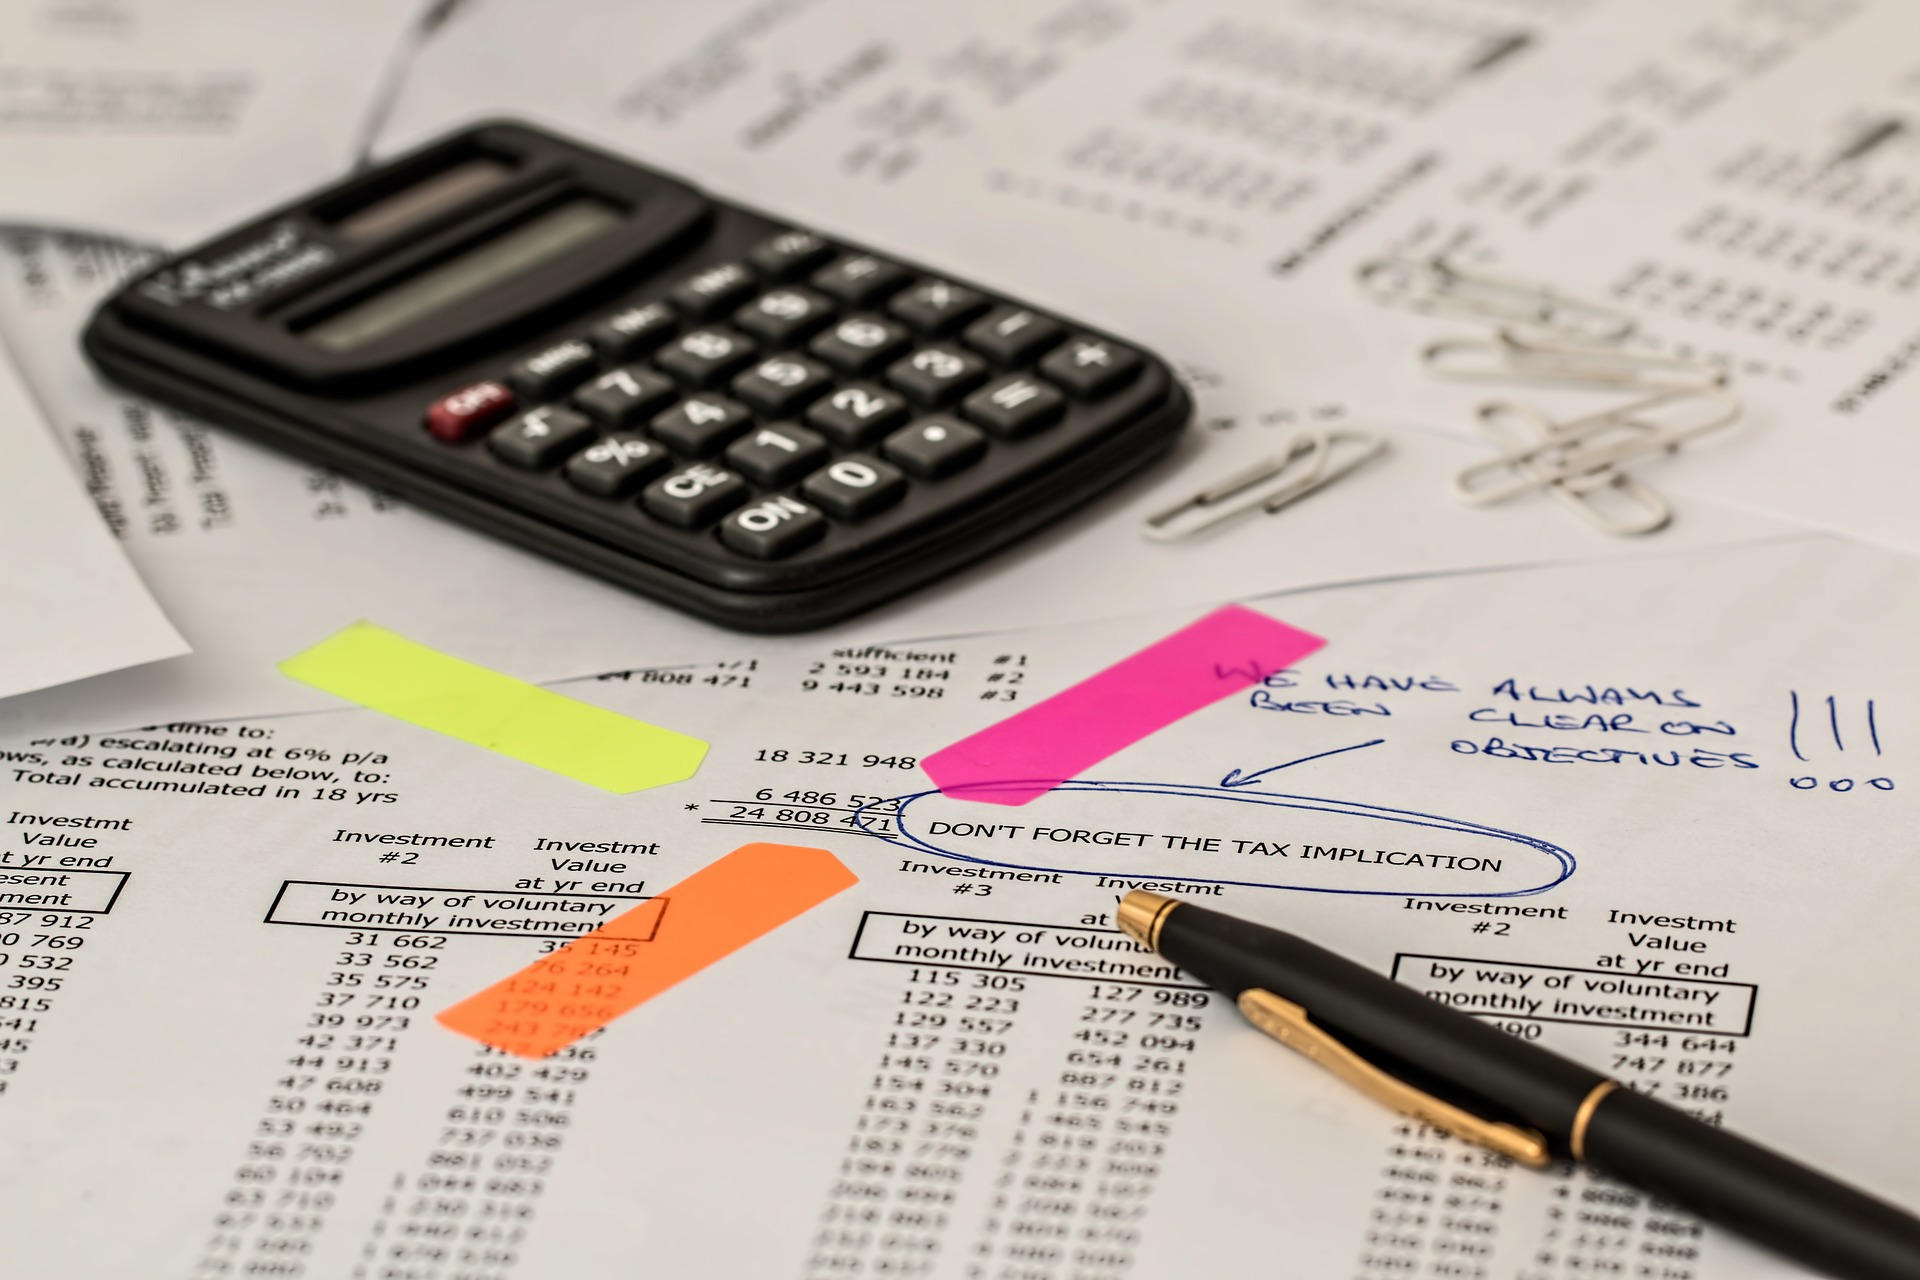 A monthly balance sheet that mentions tax implications with a calculator, pen, and colored adhesive markers.